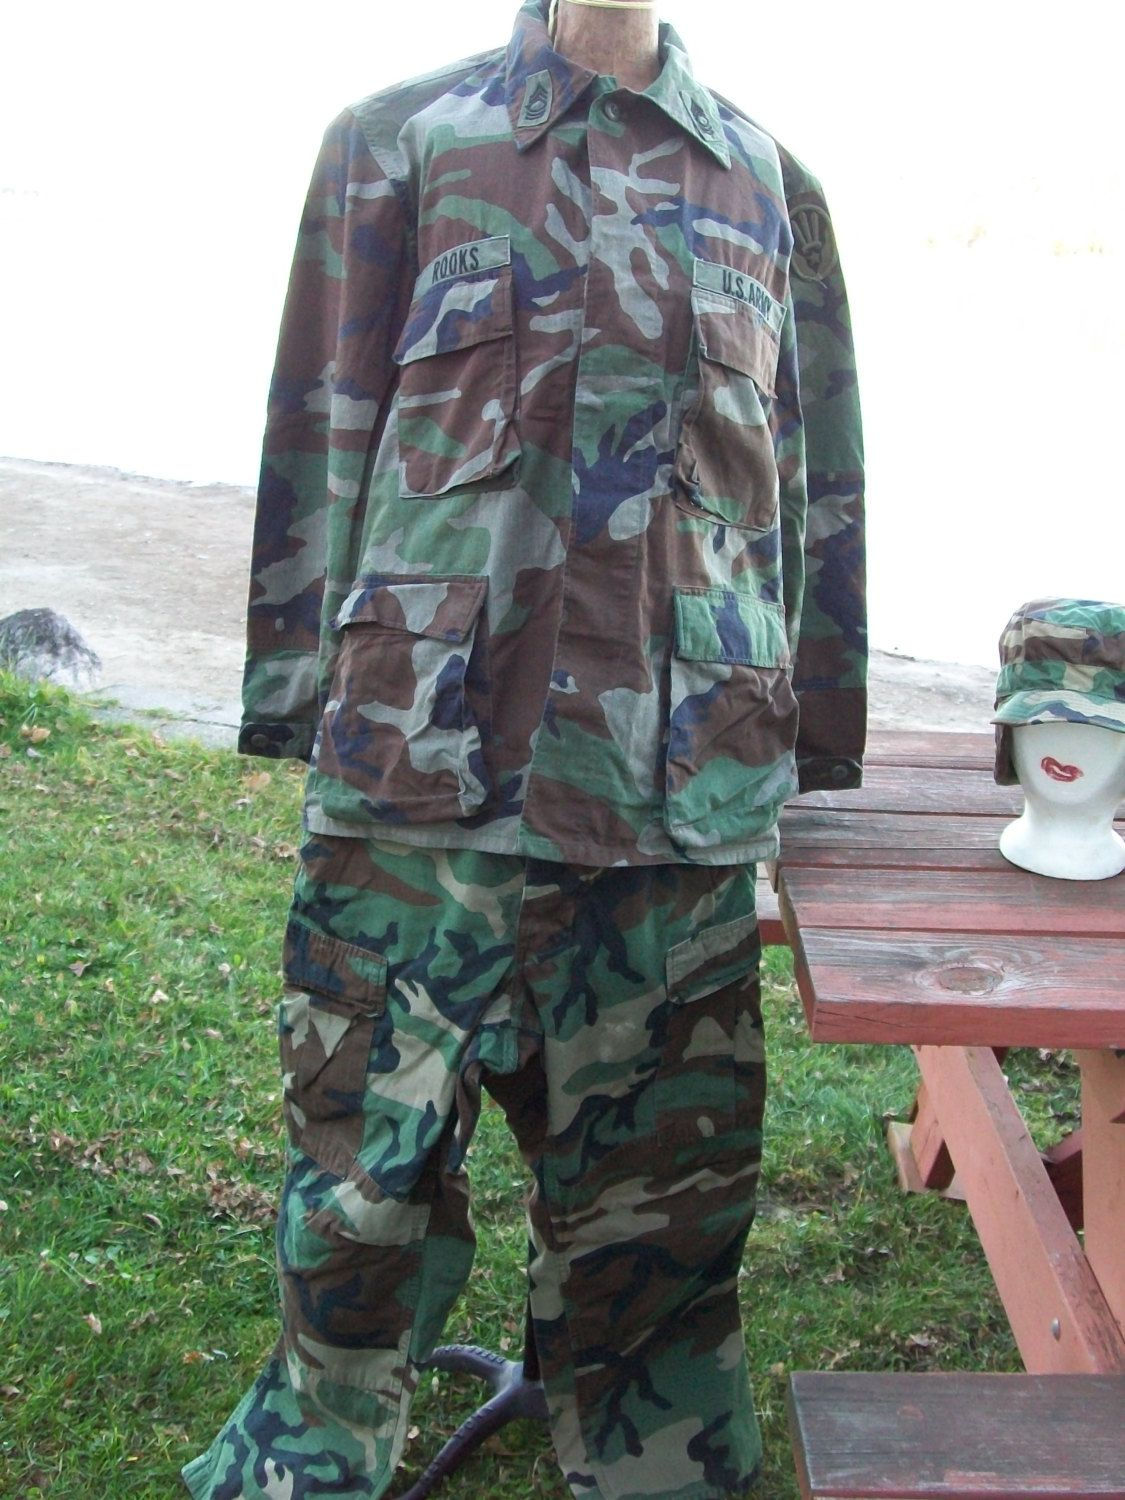 Authentic 1960's Army Fatigue Uniform - Jacket, Pants & Hat - Rip-Stop, Woodland Camouflage Pattern, Camo Outfit by LucysLuckyDeals on Etsy